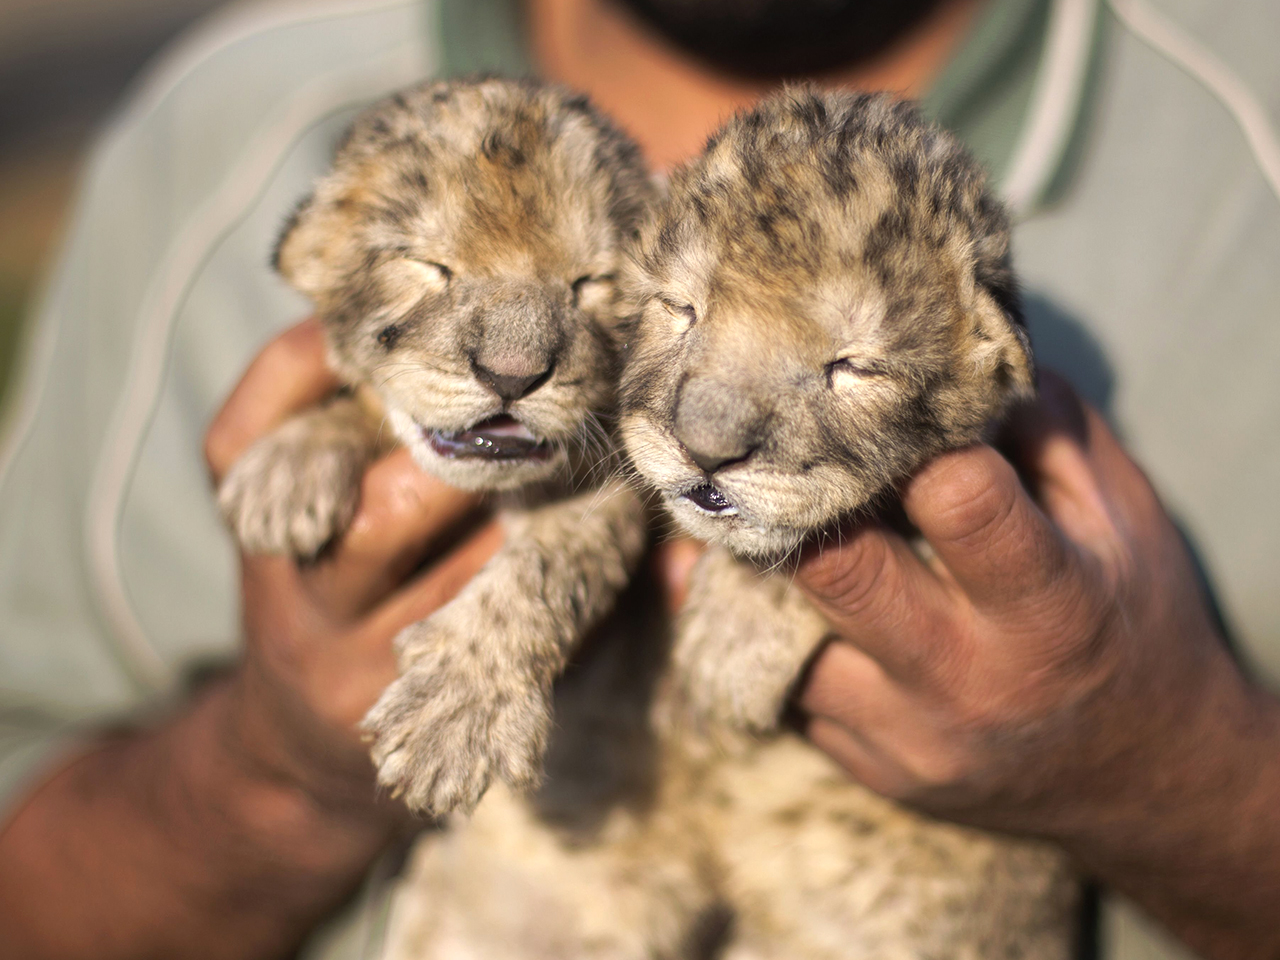 Adorable twin lion cubs born at Gaza Strip zoo - TODAY.com